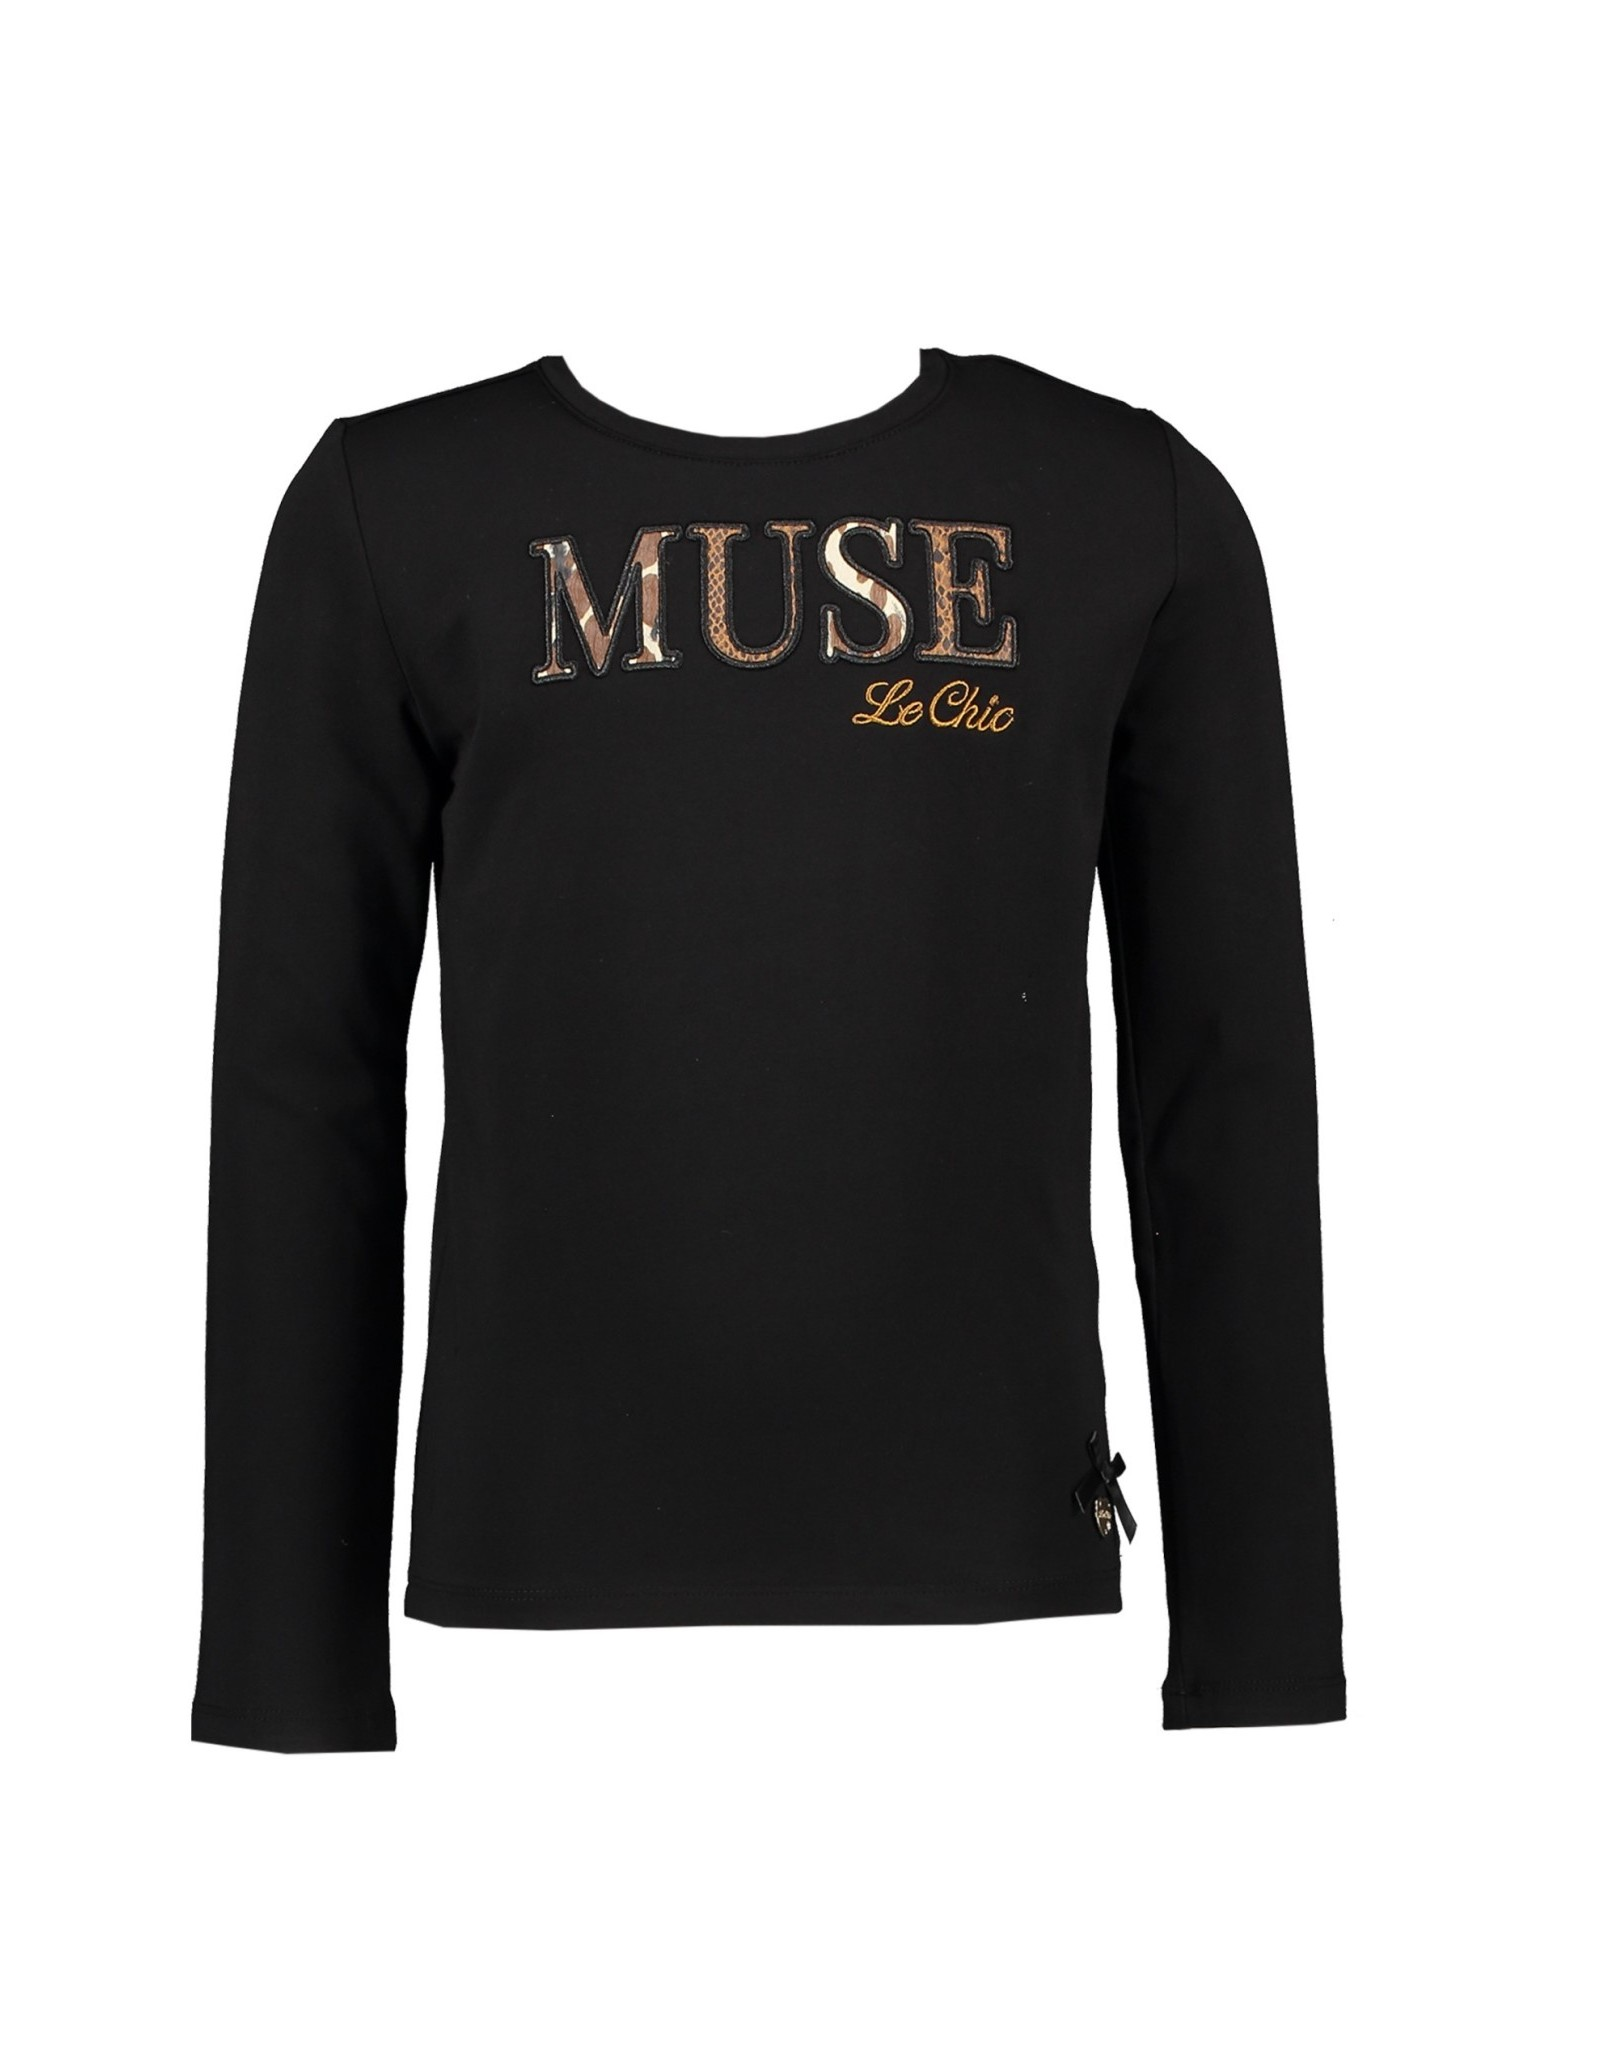 Le Chic t-shirt muse